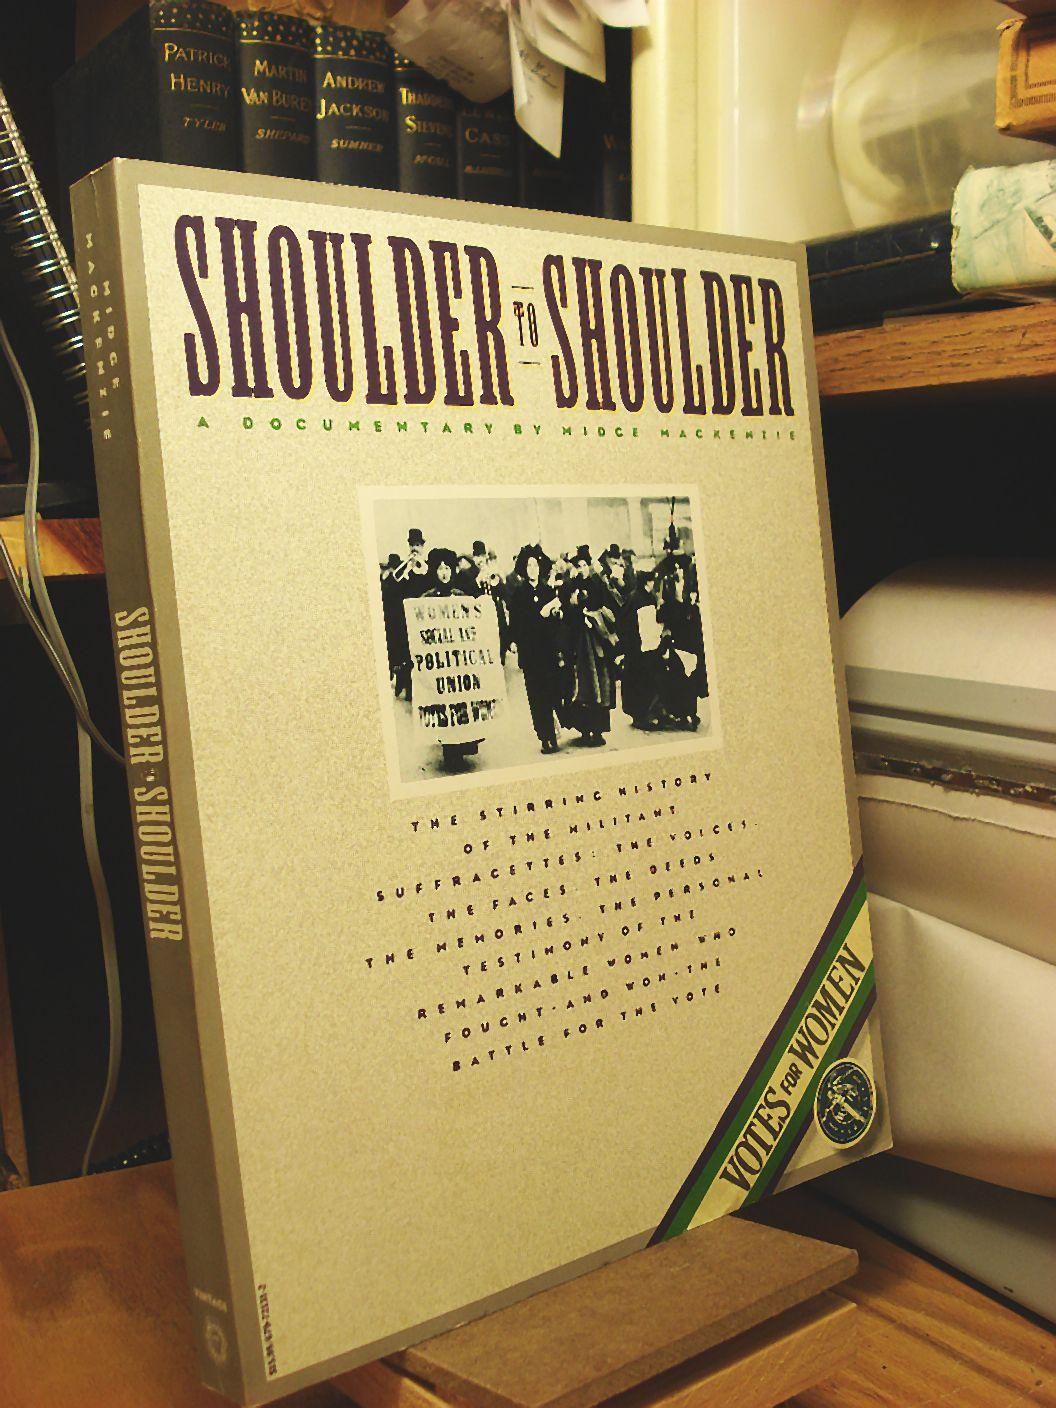 SHOULDER TO SHOULDER (Vintage books)